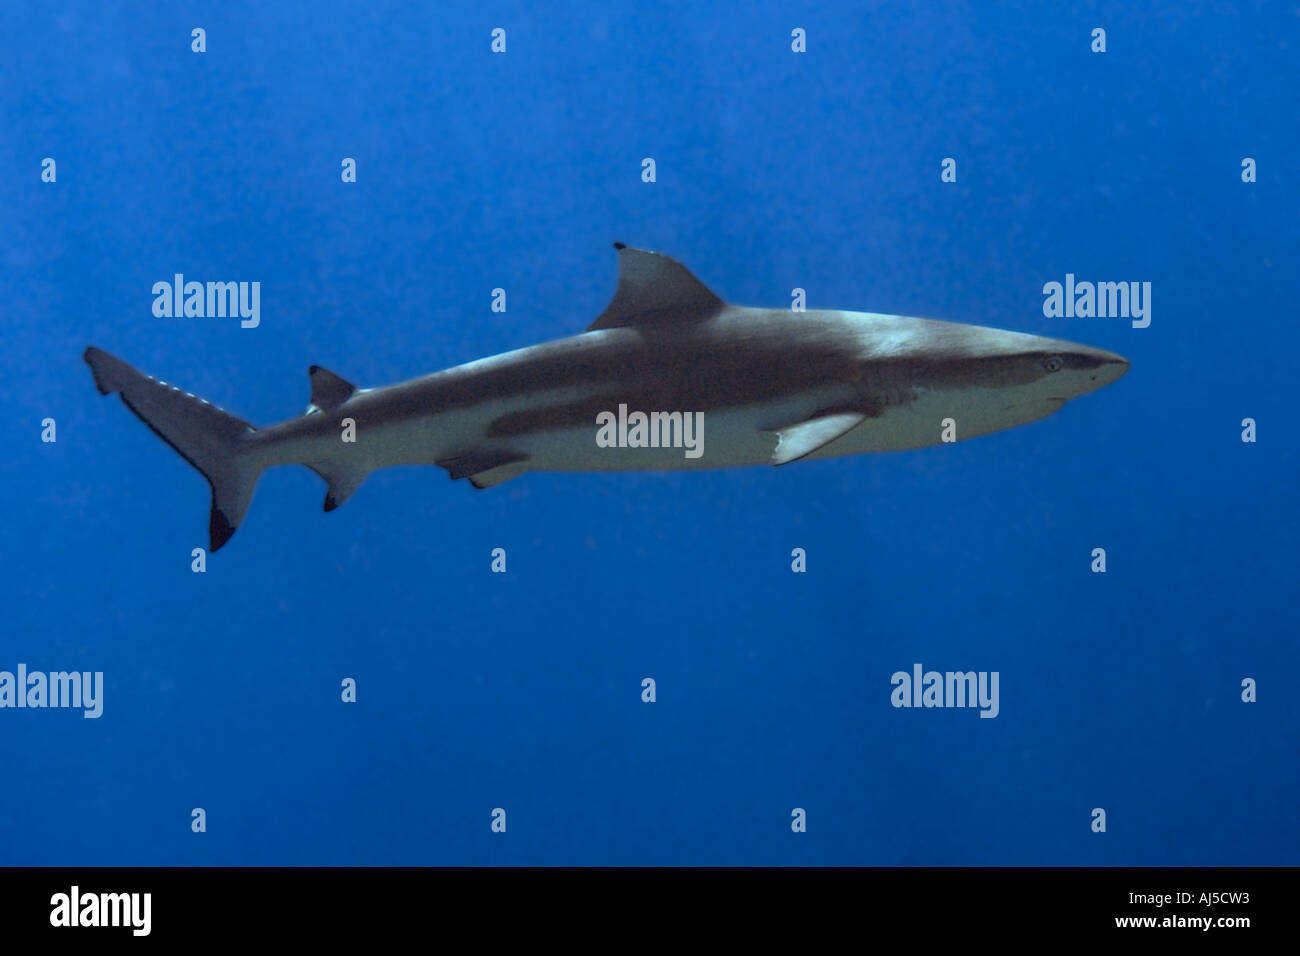 Blacktip reef shark Carcharhinus melanopterus Ailuk atoll Marshall Islands Pacific - Stock Image